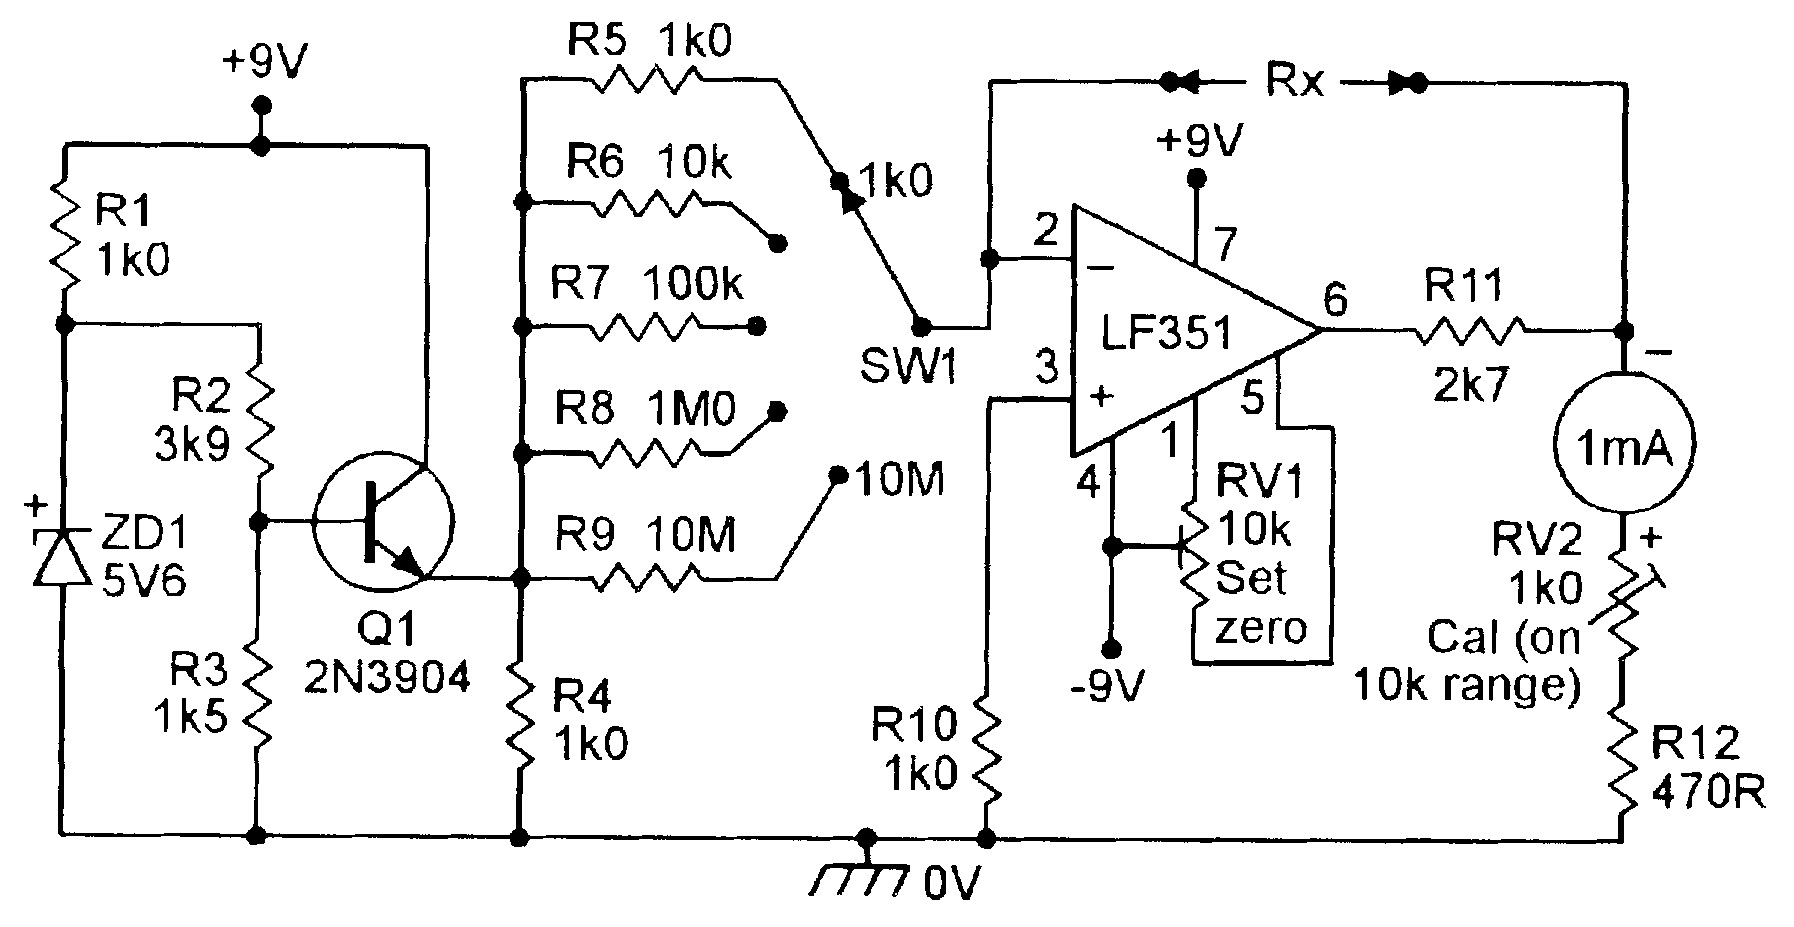 Swell Circuits Diagrams In Addition Simple Ohmmeter Circuit Diagram On Wiring 101 Cajosaxxcnl